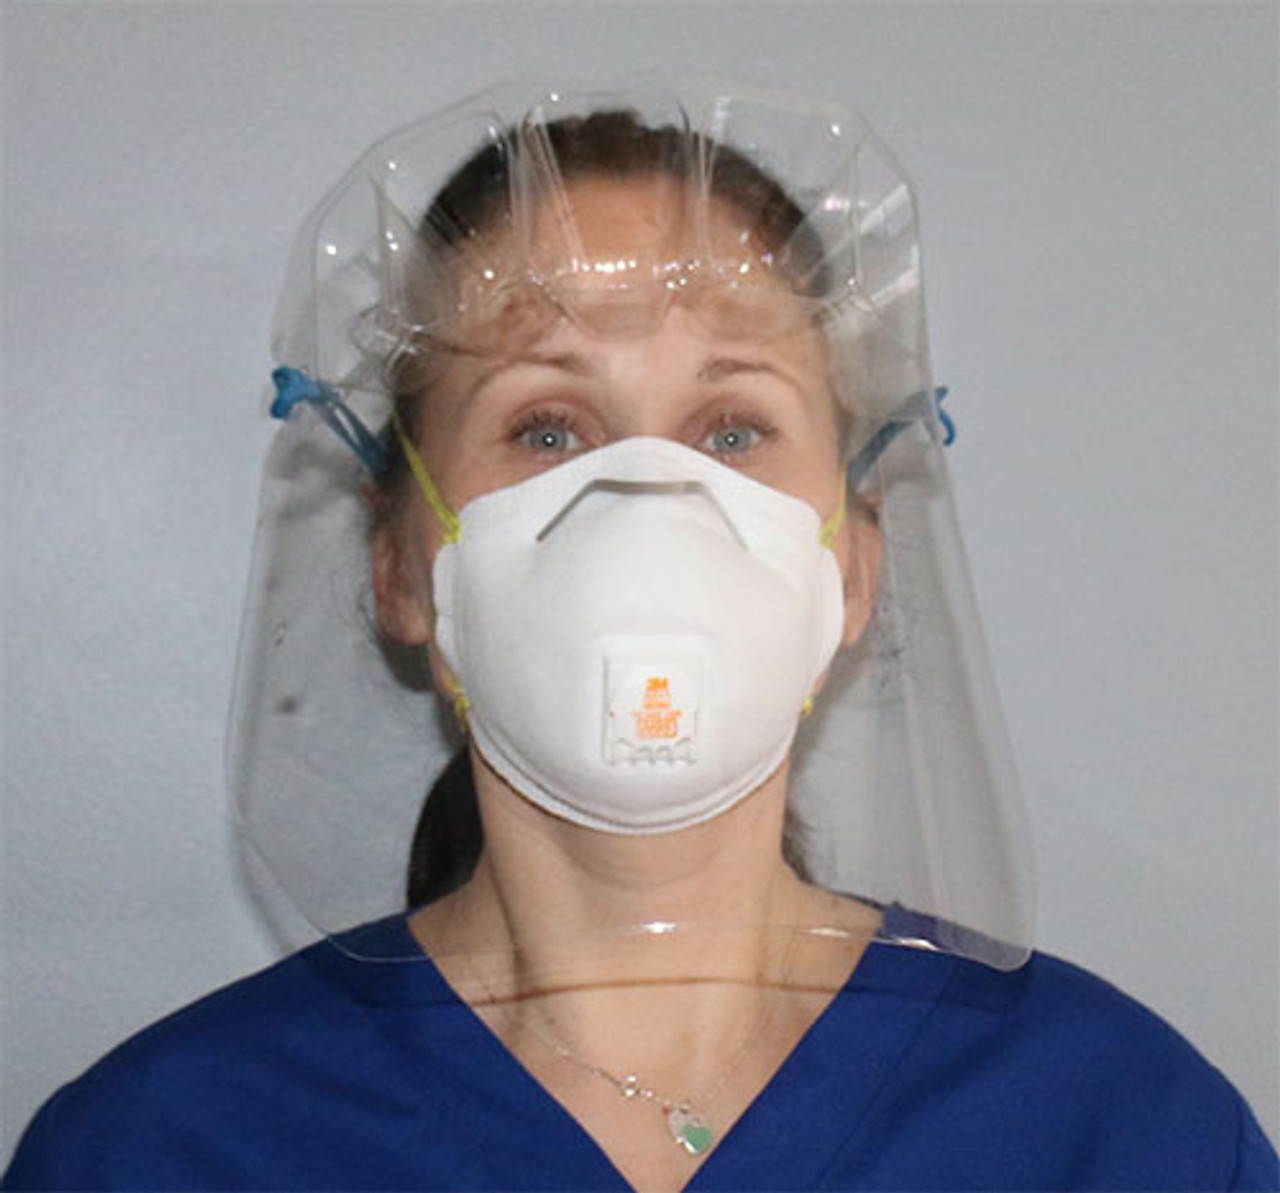 VisiGuard® 1.0 Face Shield With FlexBand with Mask front view